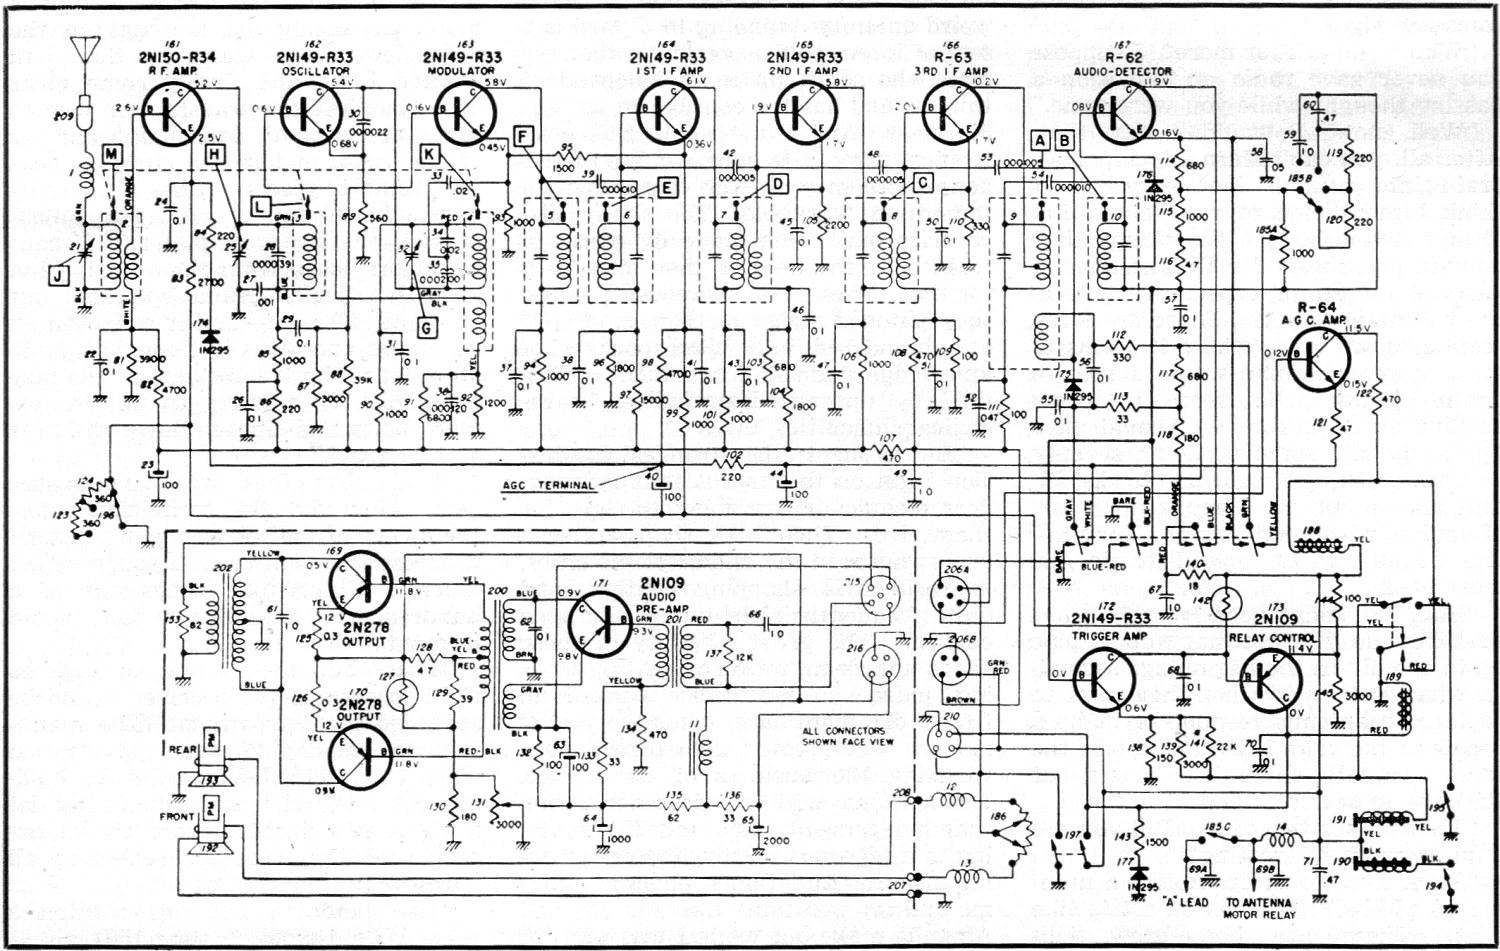 Escalade Bcm Wiring Diagram together with Kicker  p R Wiring Diagram as well Toyota Yaris 2007 Car Wiring Diagram likewise Delco All Transistor Auto Radio August 1957 Radio Tv News furthermore Wiring Diagram 2003 Saab 9 3 Convertible. on wiring diagram of a car amplifier